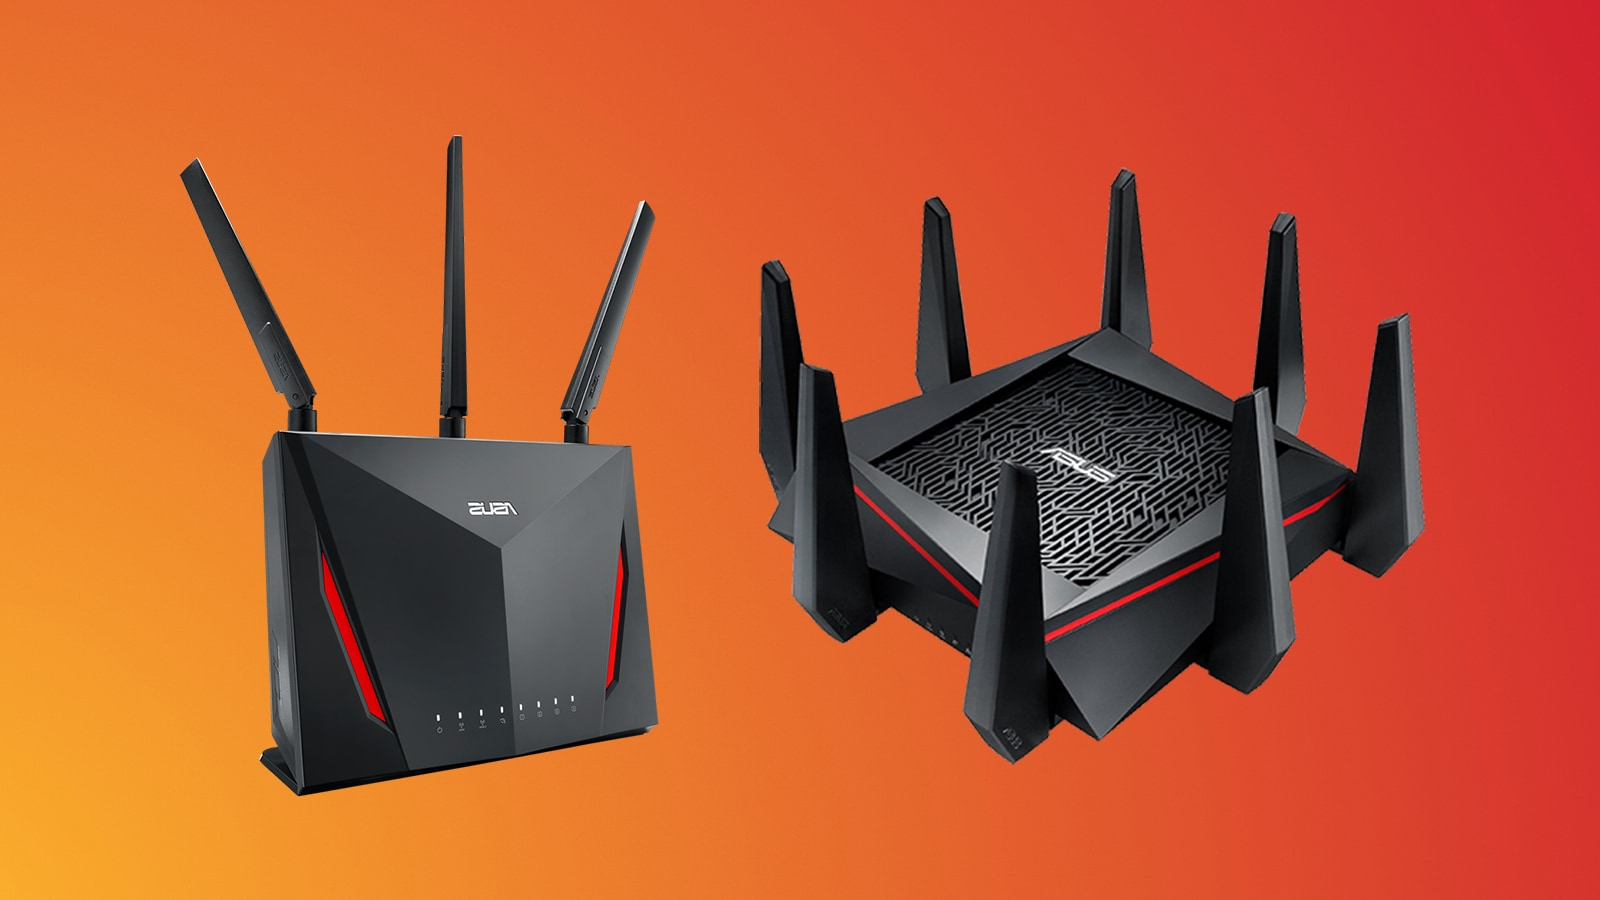 10 Best Vpn Routers 2021 For Small Business Home Users Gamers More